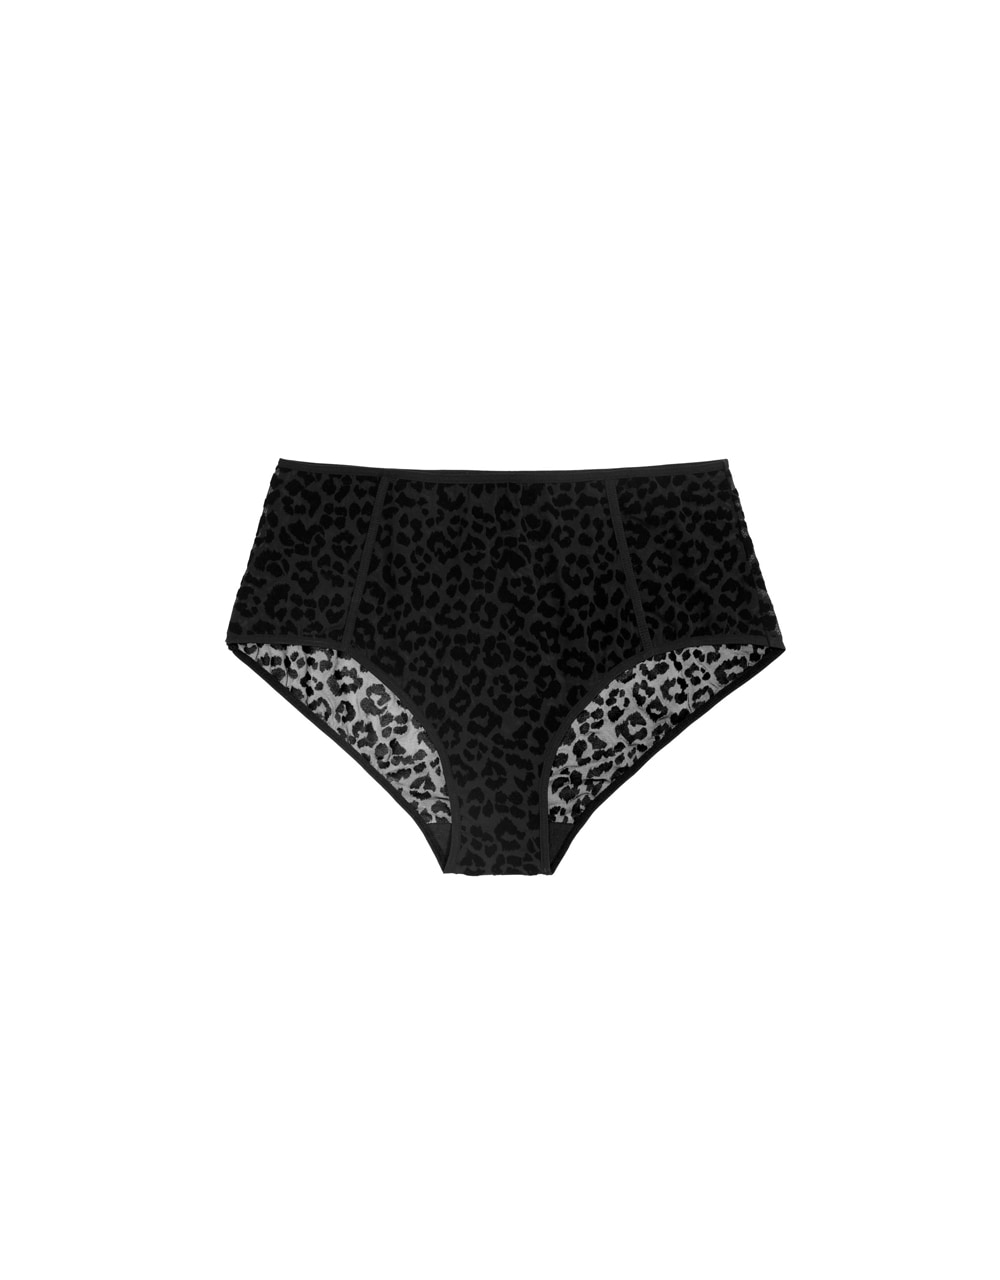 lingerie culotte taille haute Jazz Mesh Foil 25 € Girls In Paris photo 6